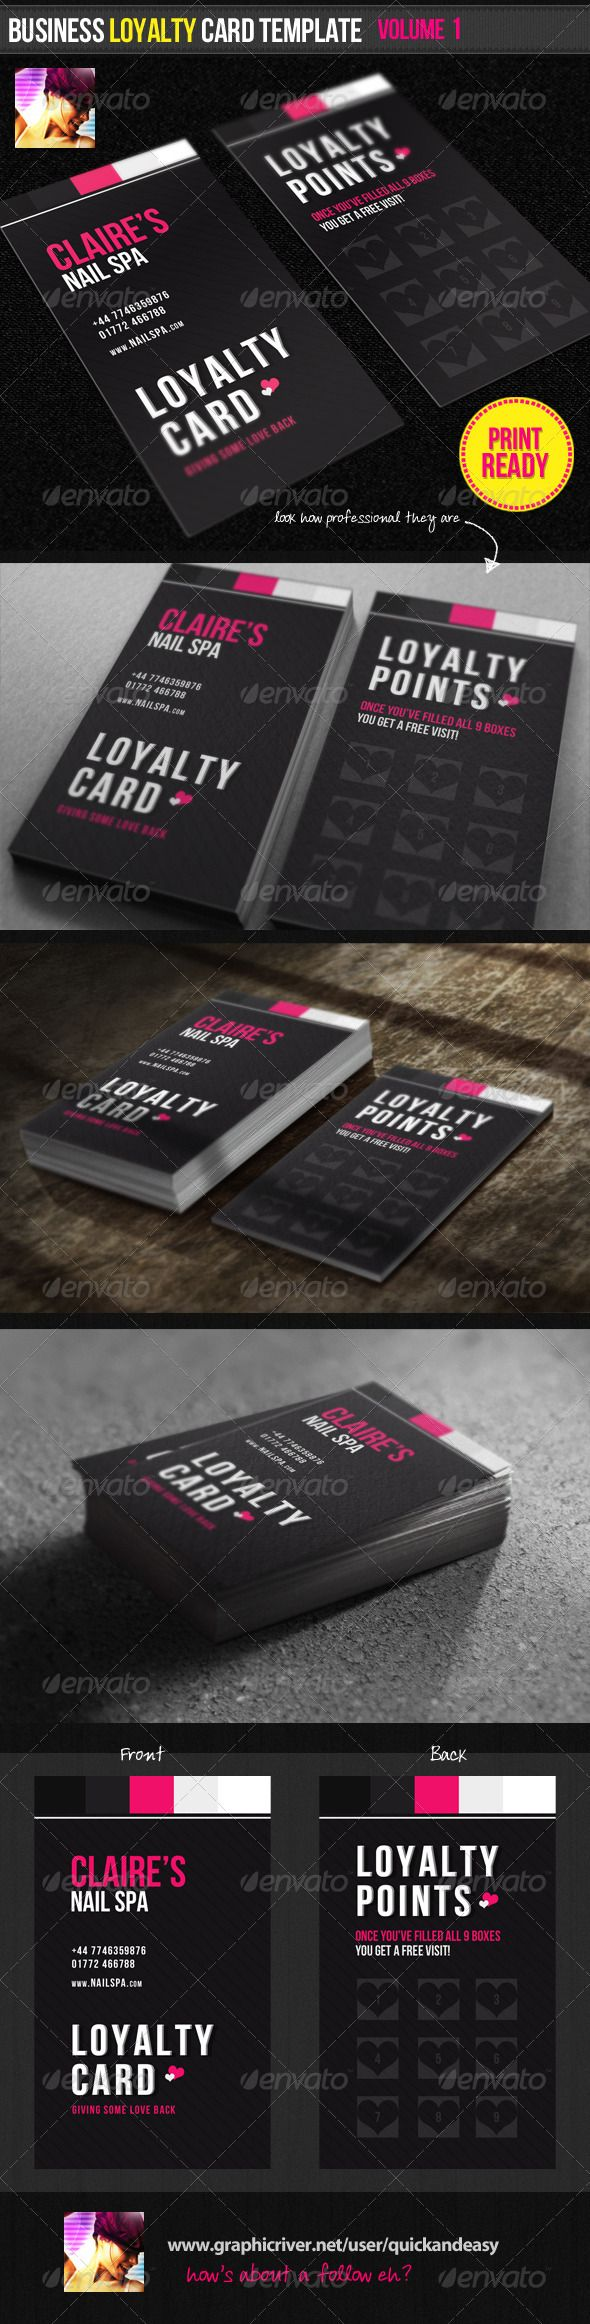 business loyalty card template vol 1 loyalty flyer template and business loyalty card template vol 1 graphicriver business loyalty card photoshop psd template business